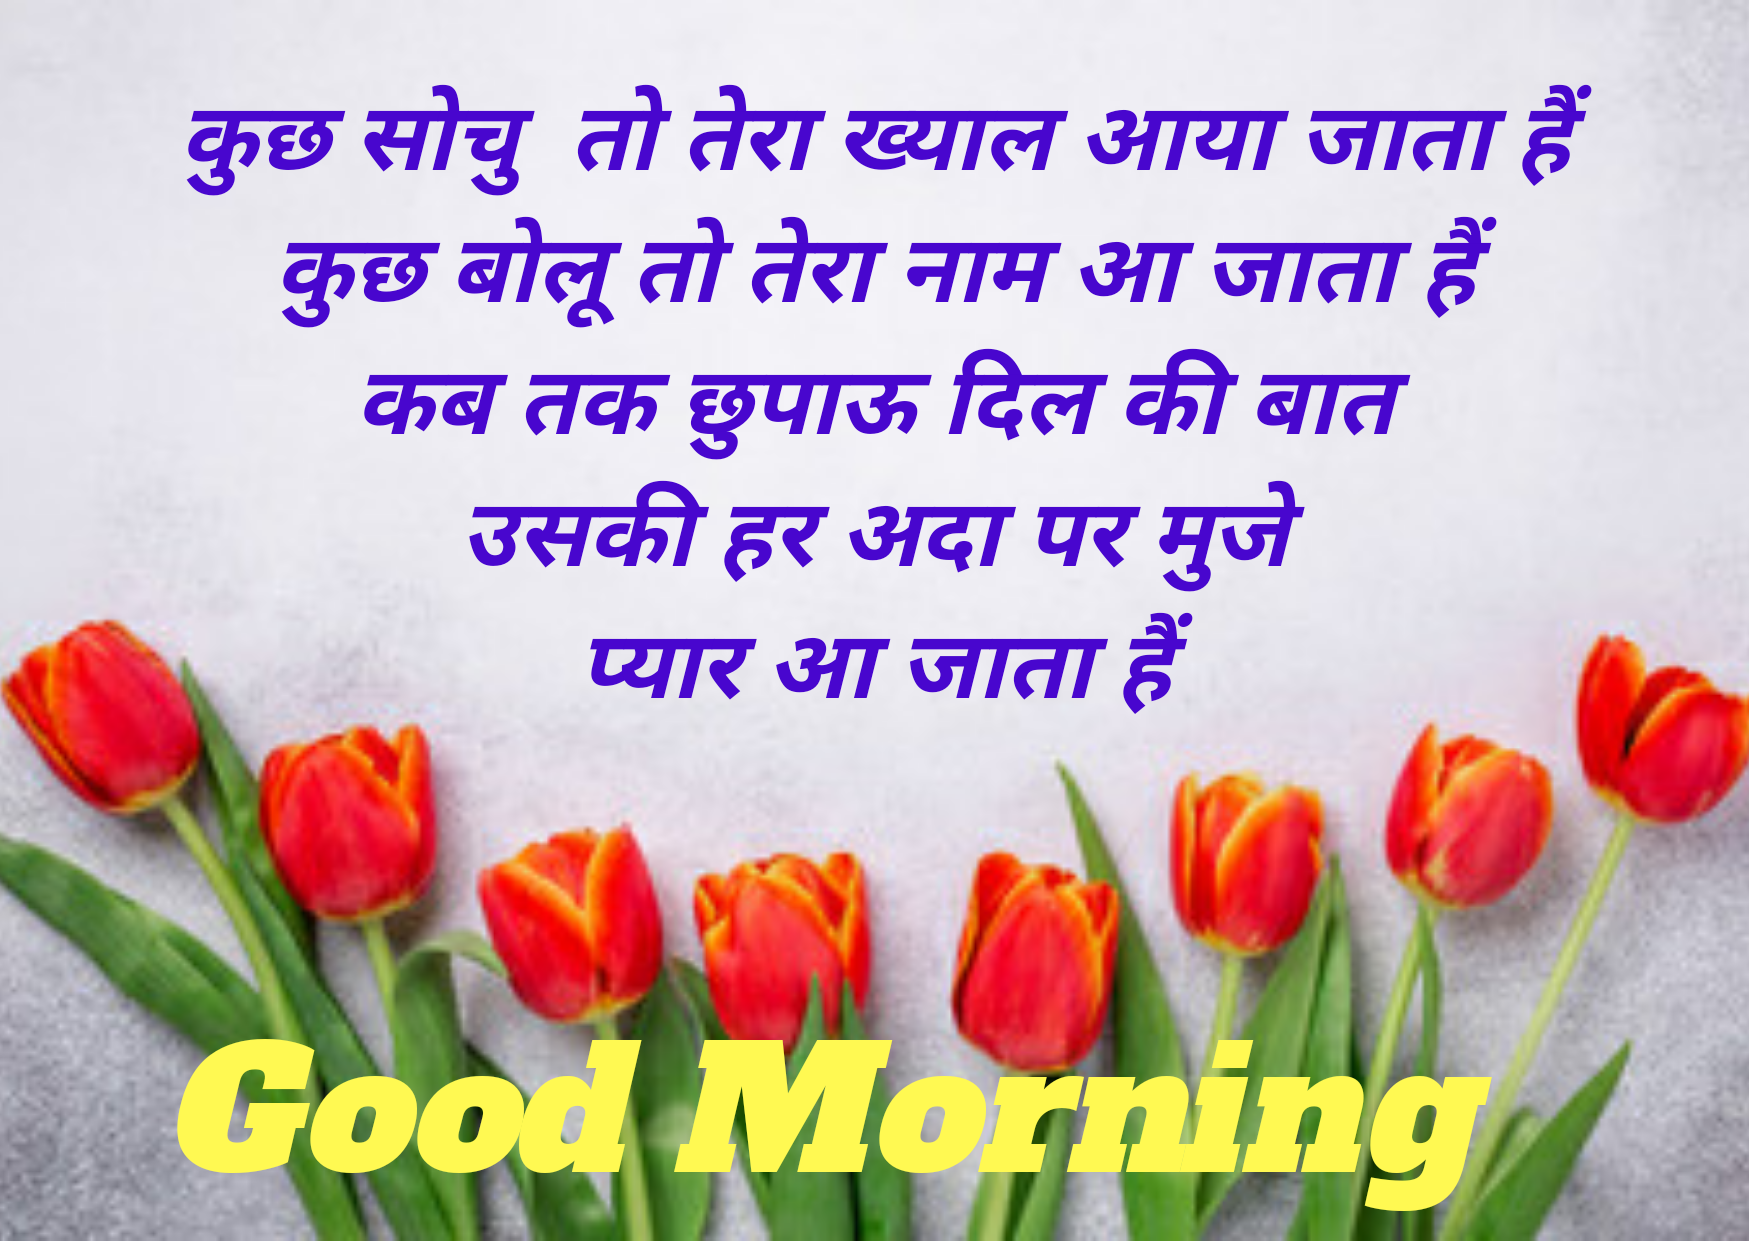 Good Morning Images for Wife Hindi, Good Morning Quotes wishes for Wife & lover,